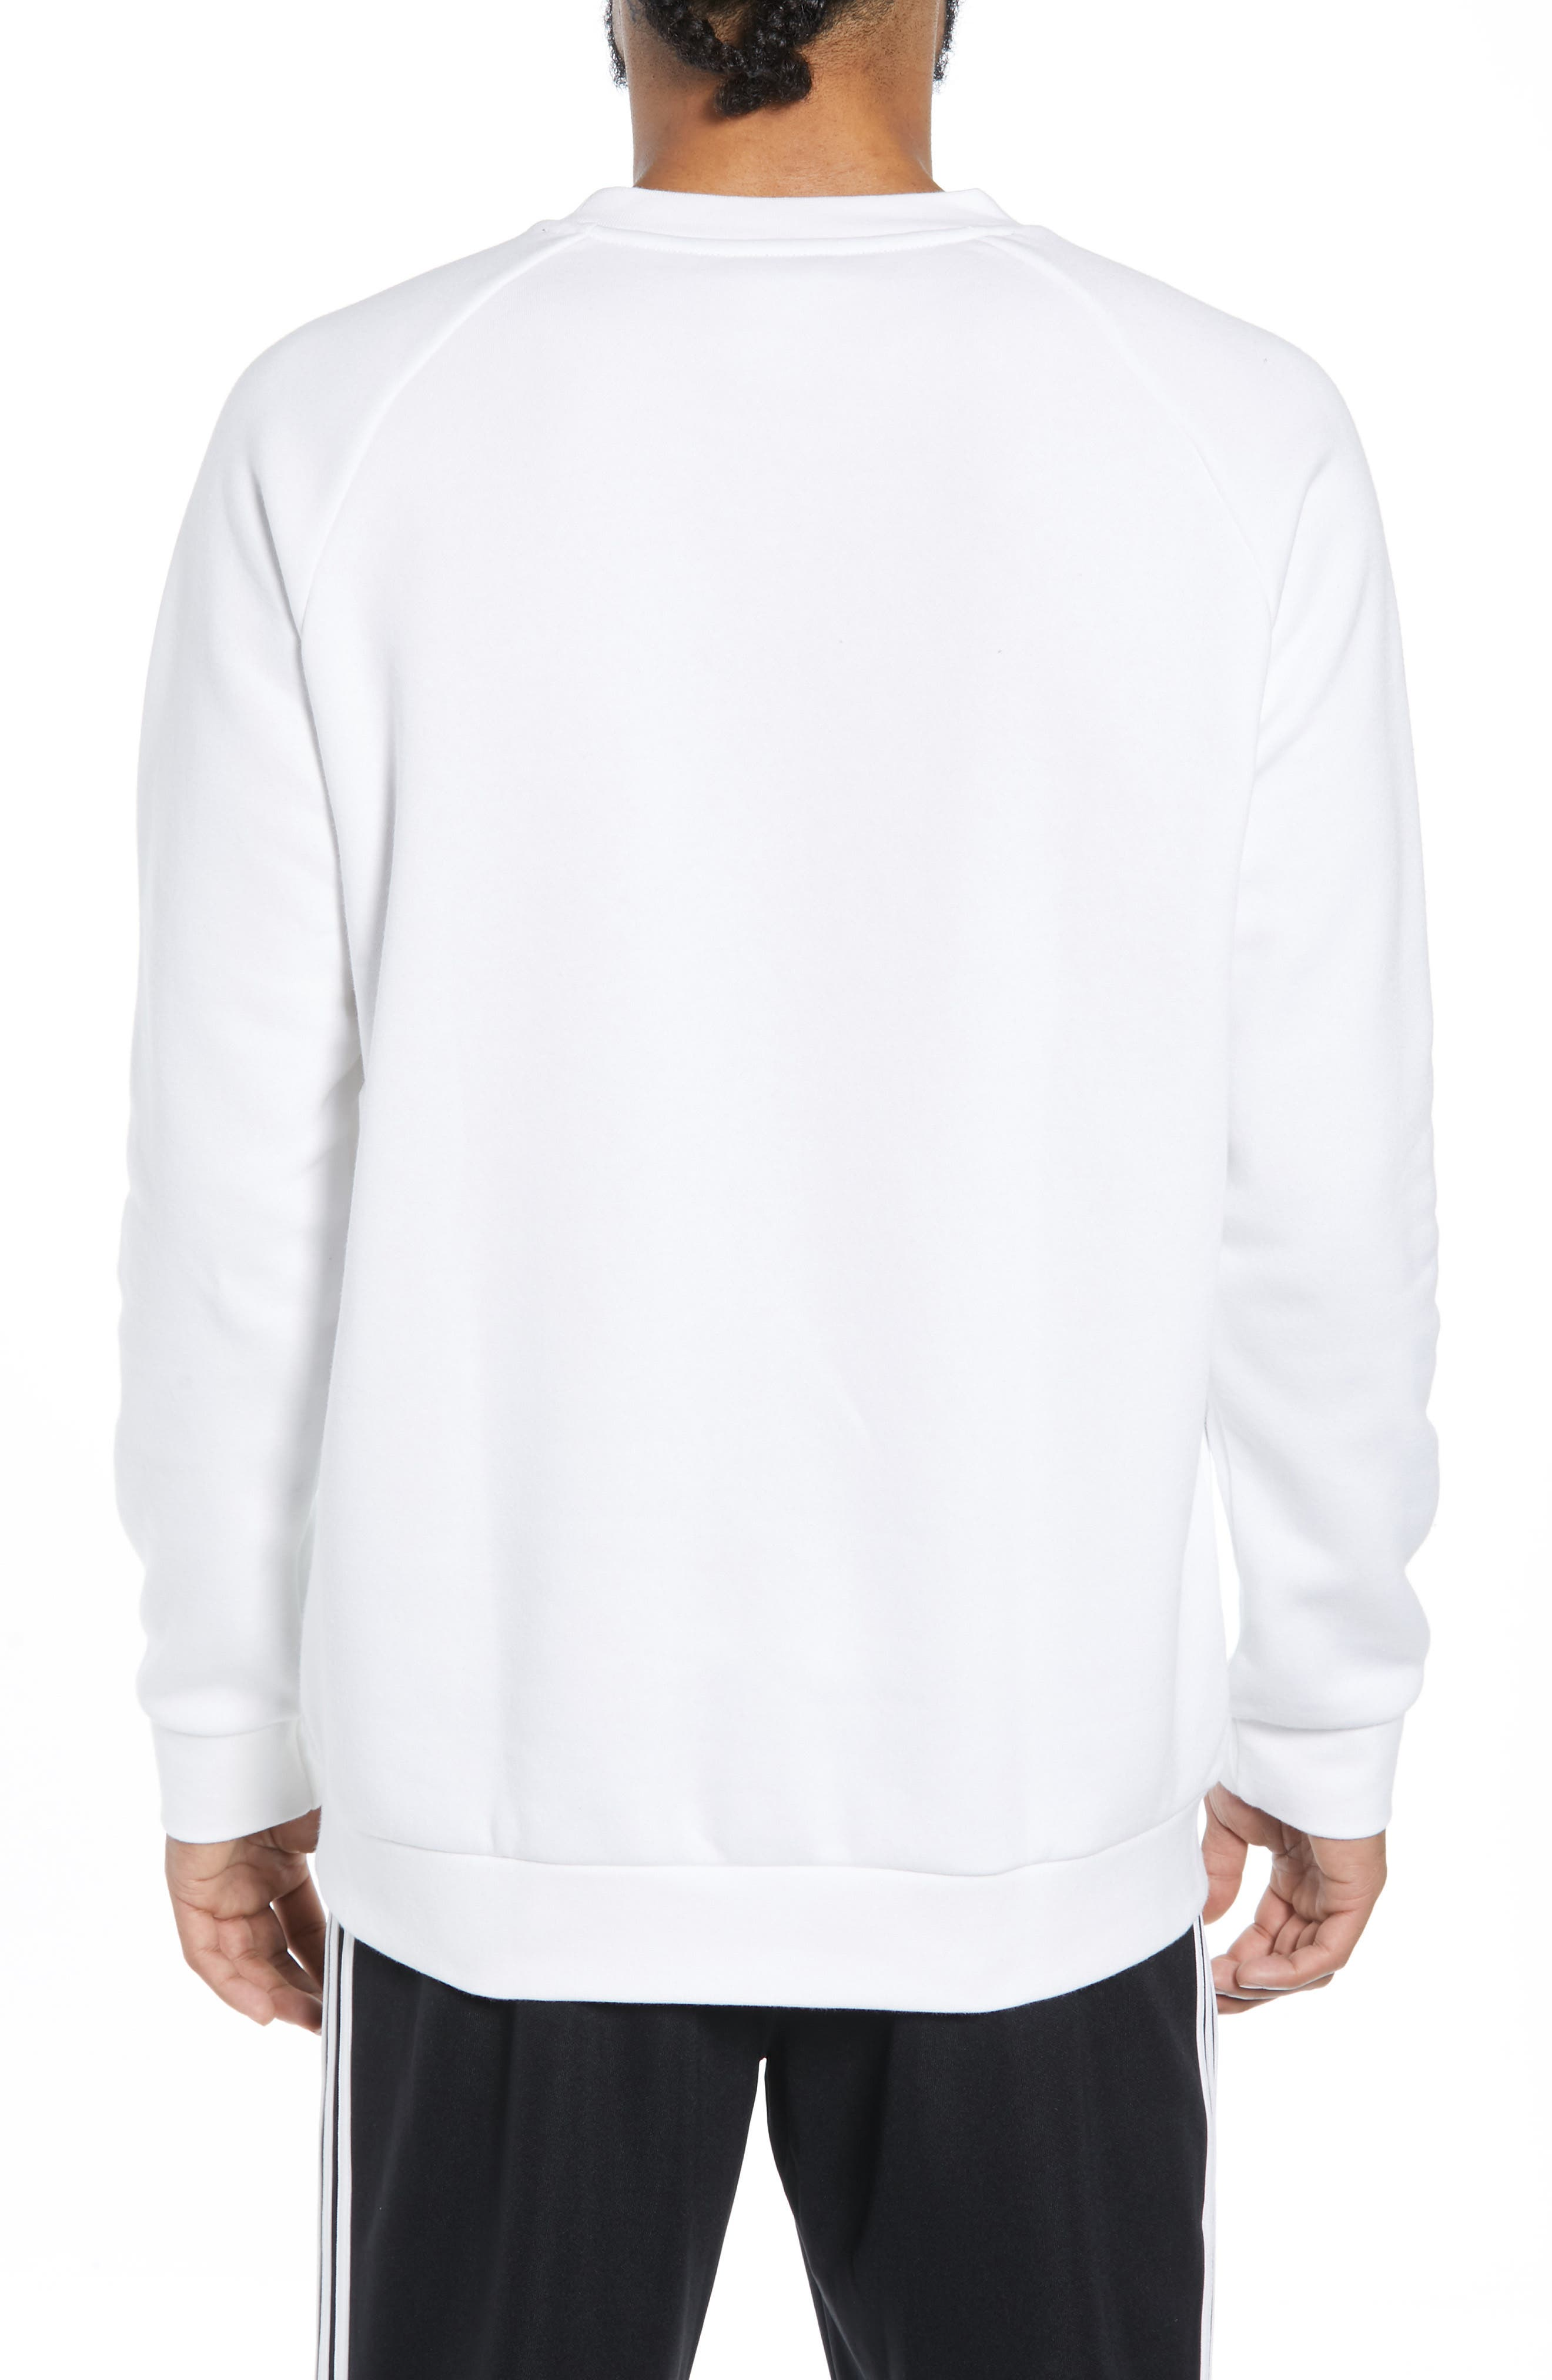 Appliqué Logo Graphic Sweatshirt,                             Alternate thumbnail 2, color,                             100